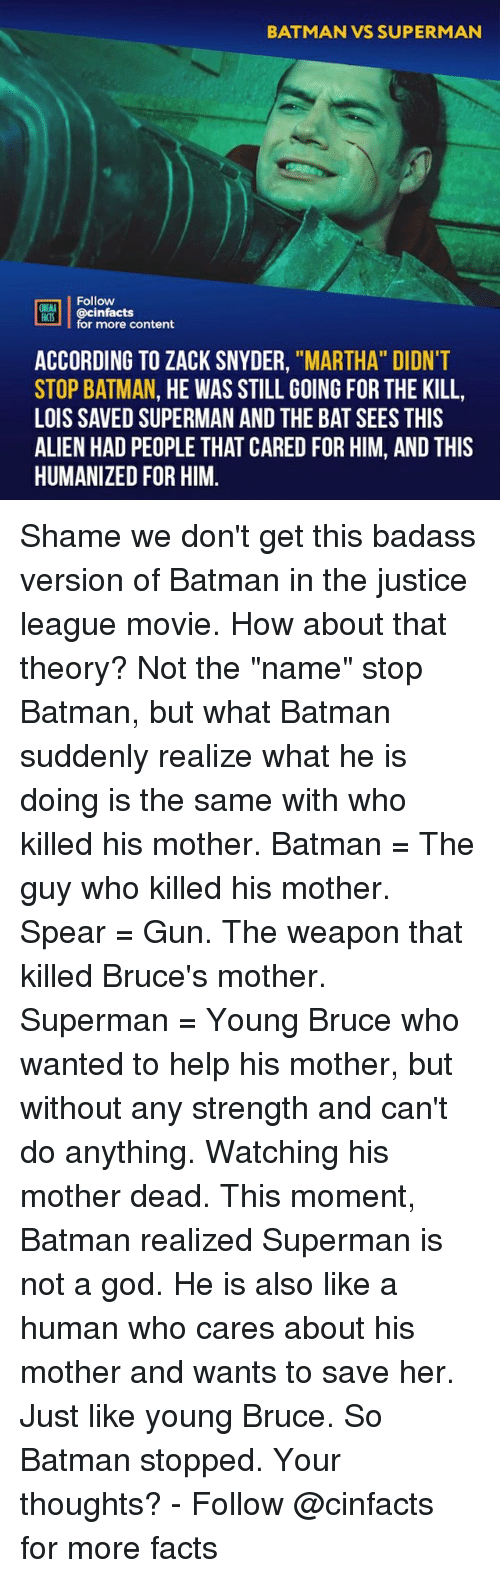 "Batman, Facts, and God: BATMAN VS SUPERMAN  Follow  ONEANA  @cinfacts  for more content  ACCORDING TO ZACK SNYDER, ""MARTHA"" DIDNT  STOP BATMAN, HE WAS STILL GOING FOR THE KILL,  LOIS SAVED SUPERMAN AND THE BAT SEES THIS  ALIEN HAD PEOPLE THAT CARED FOR HIM, AND THIS  HUMANIZED FOR HIM. Shame we don't get this badass version of Batman in the justice league movie. How about that theory? Not the ""name"" stop Batman, but what Batman suddenly realize what he is doing is the same with who killed his mother. Batman = The guy who killed his mother. Spear = Gun. The weapon that killed Bruce's mother. Superman = Young Bruce who wanted to help his mother, but without any strength and can't do anything. Watching his mother dead. This moment, Batman realized Superman is not a god. He is also like a human who cares about his mother and wants to save her. Just like young Bruce. So Batman stopped. Your thoughts?⠀ -⠀⠀ Follow @cinfacts for more facts"